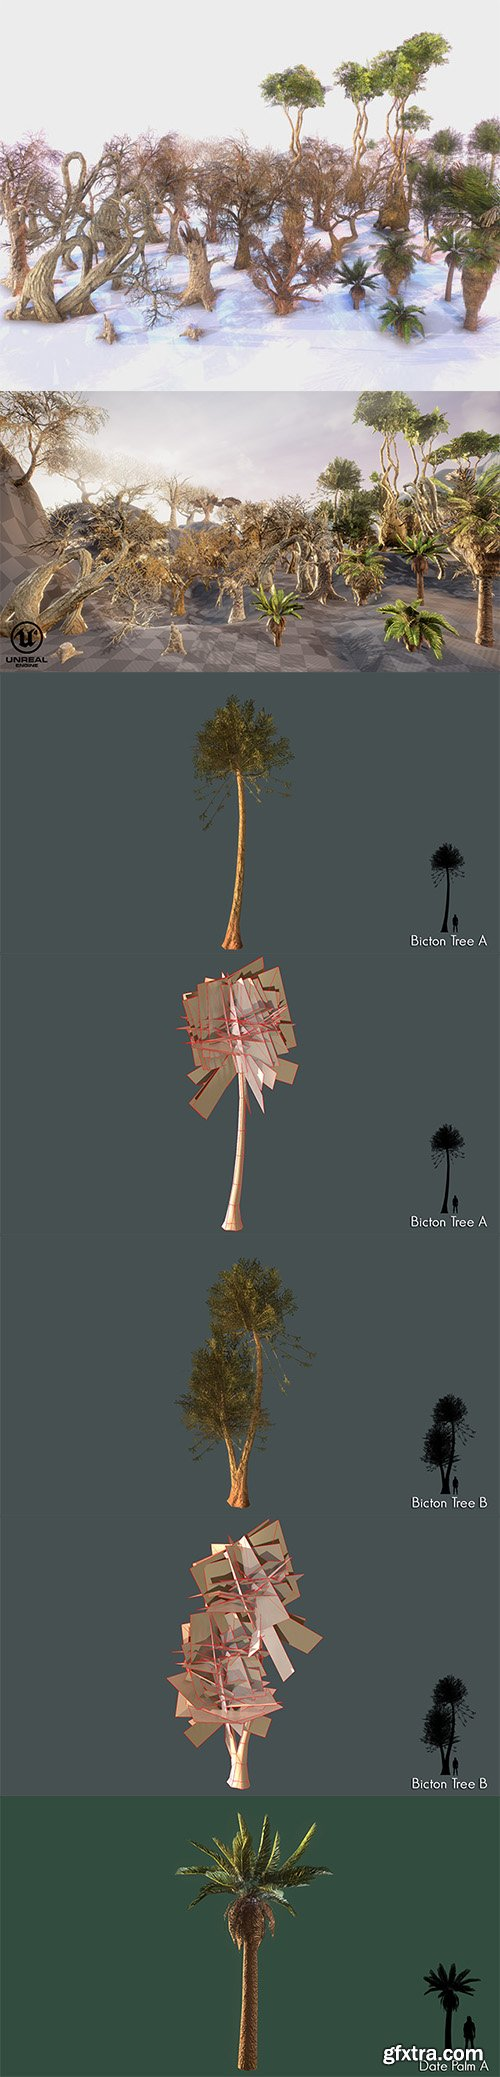 Cgtrader - Low Poly Tree Pack Low-poly 3D model